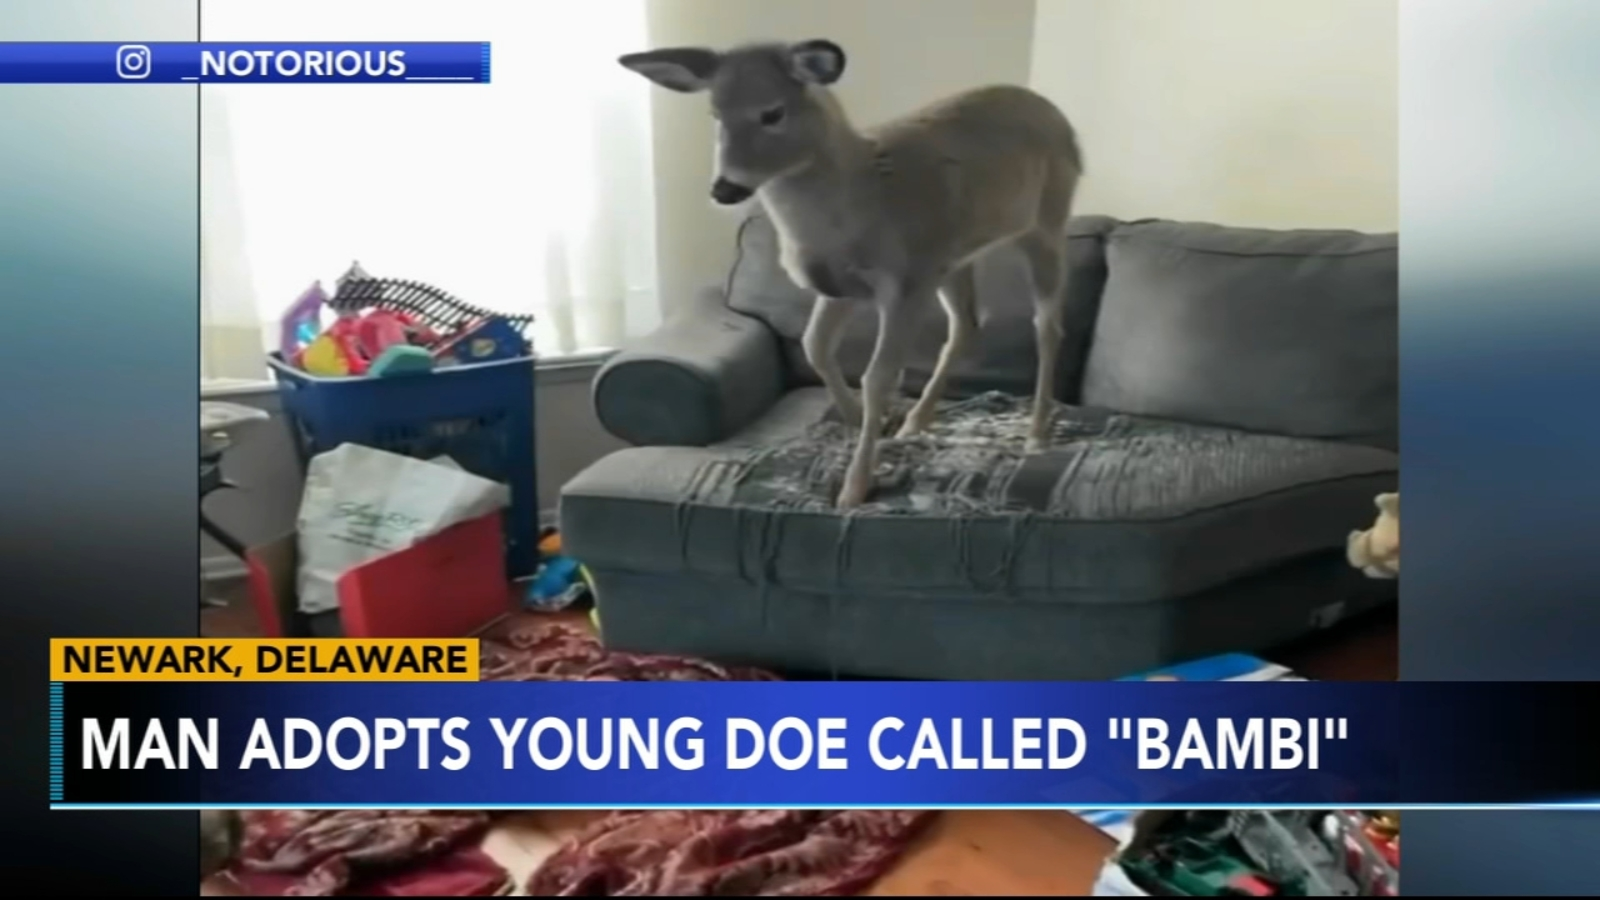 House-trained deer forms special bond with Delaware family